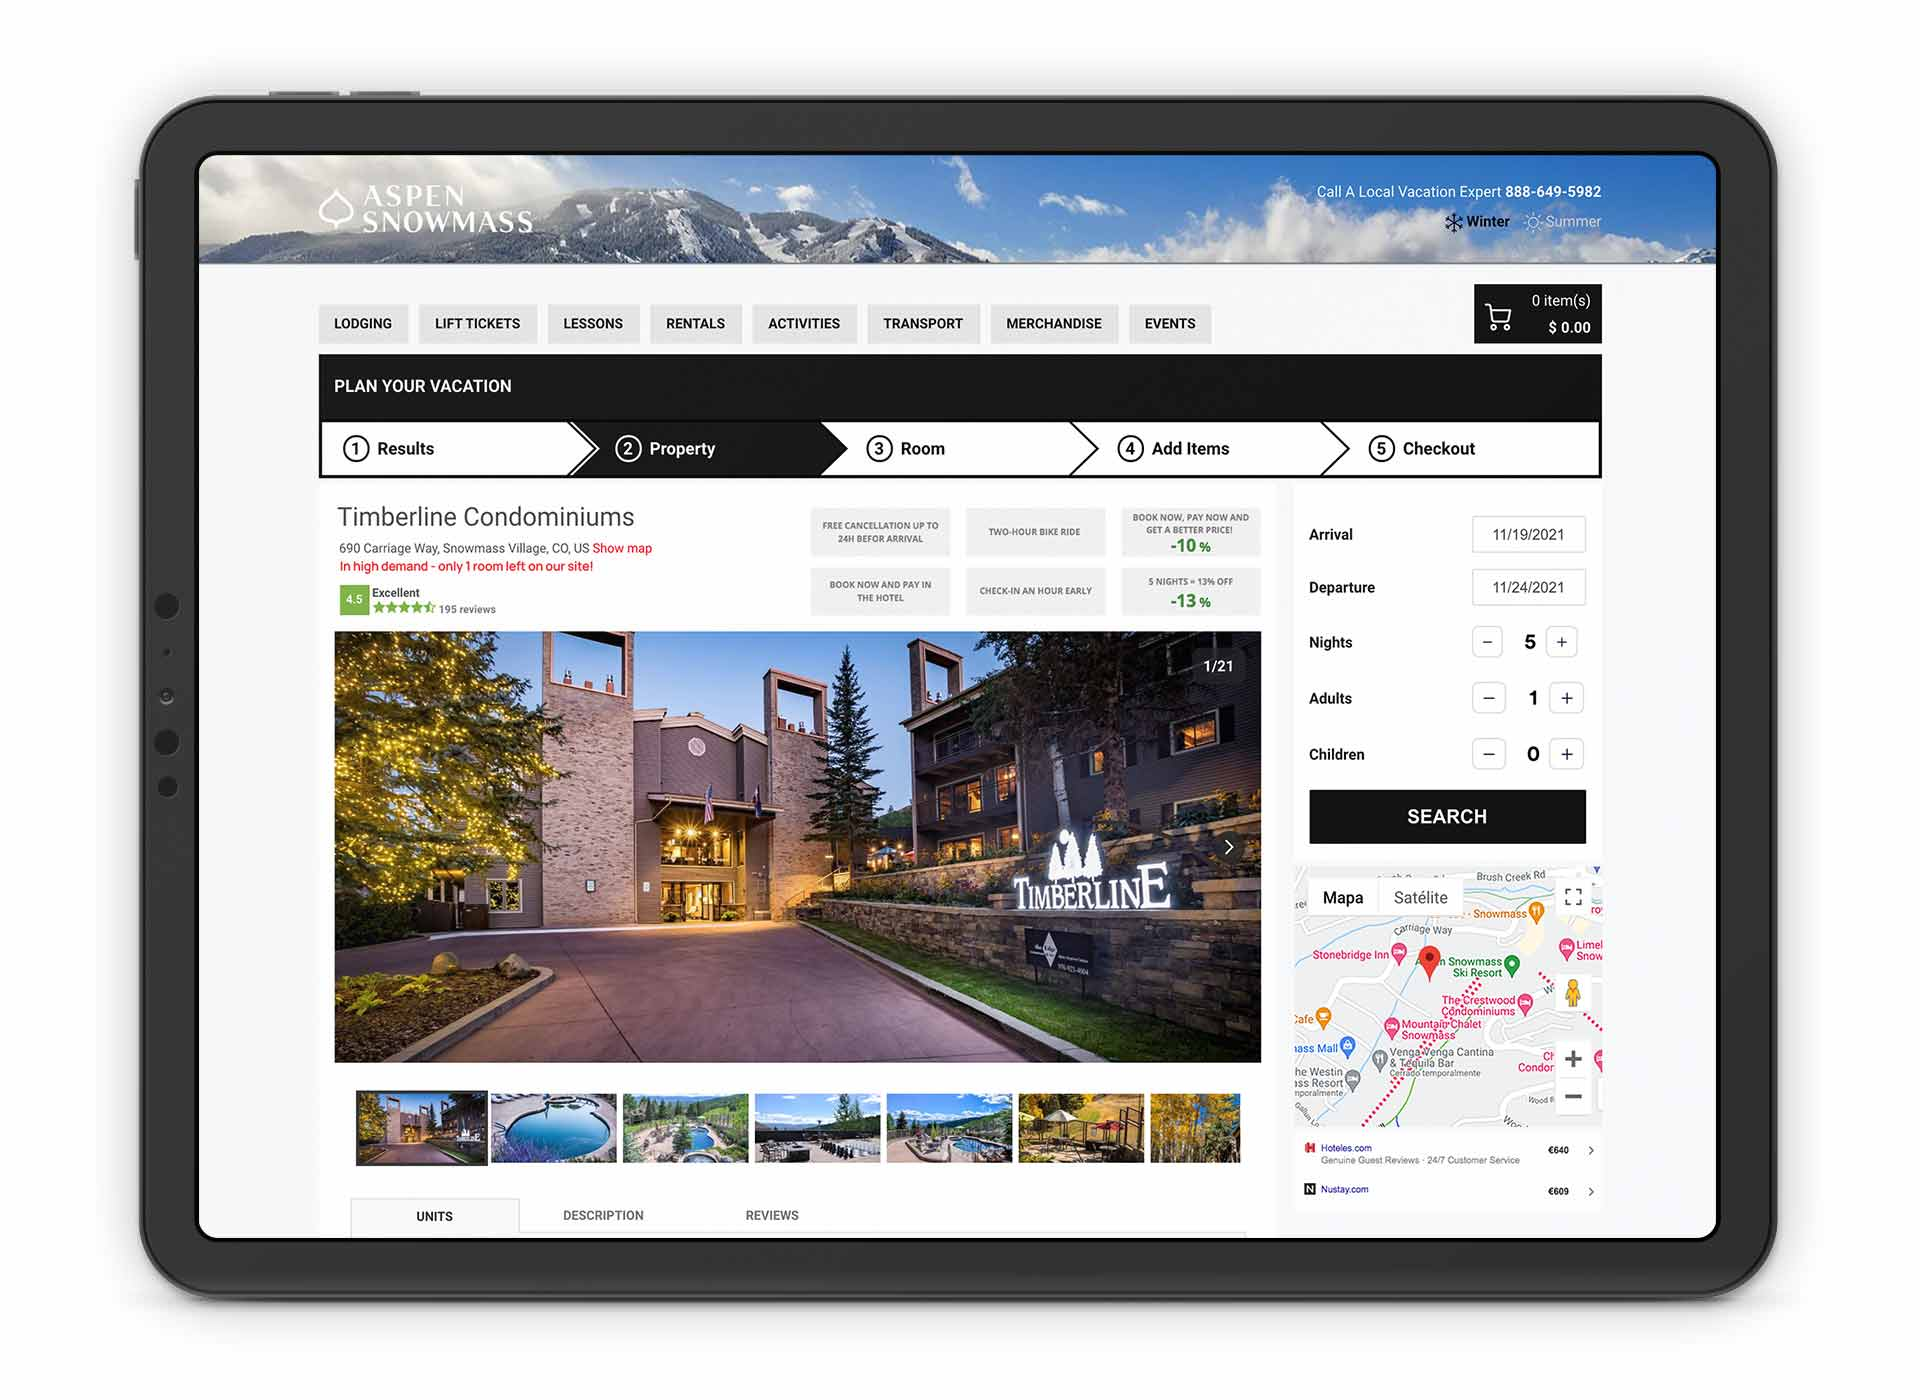 Aspen Snowmass direct booking layer by Spotlio